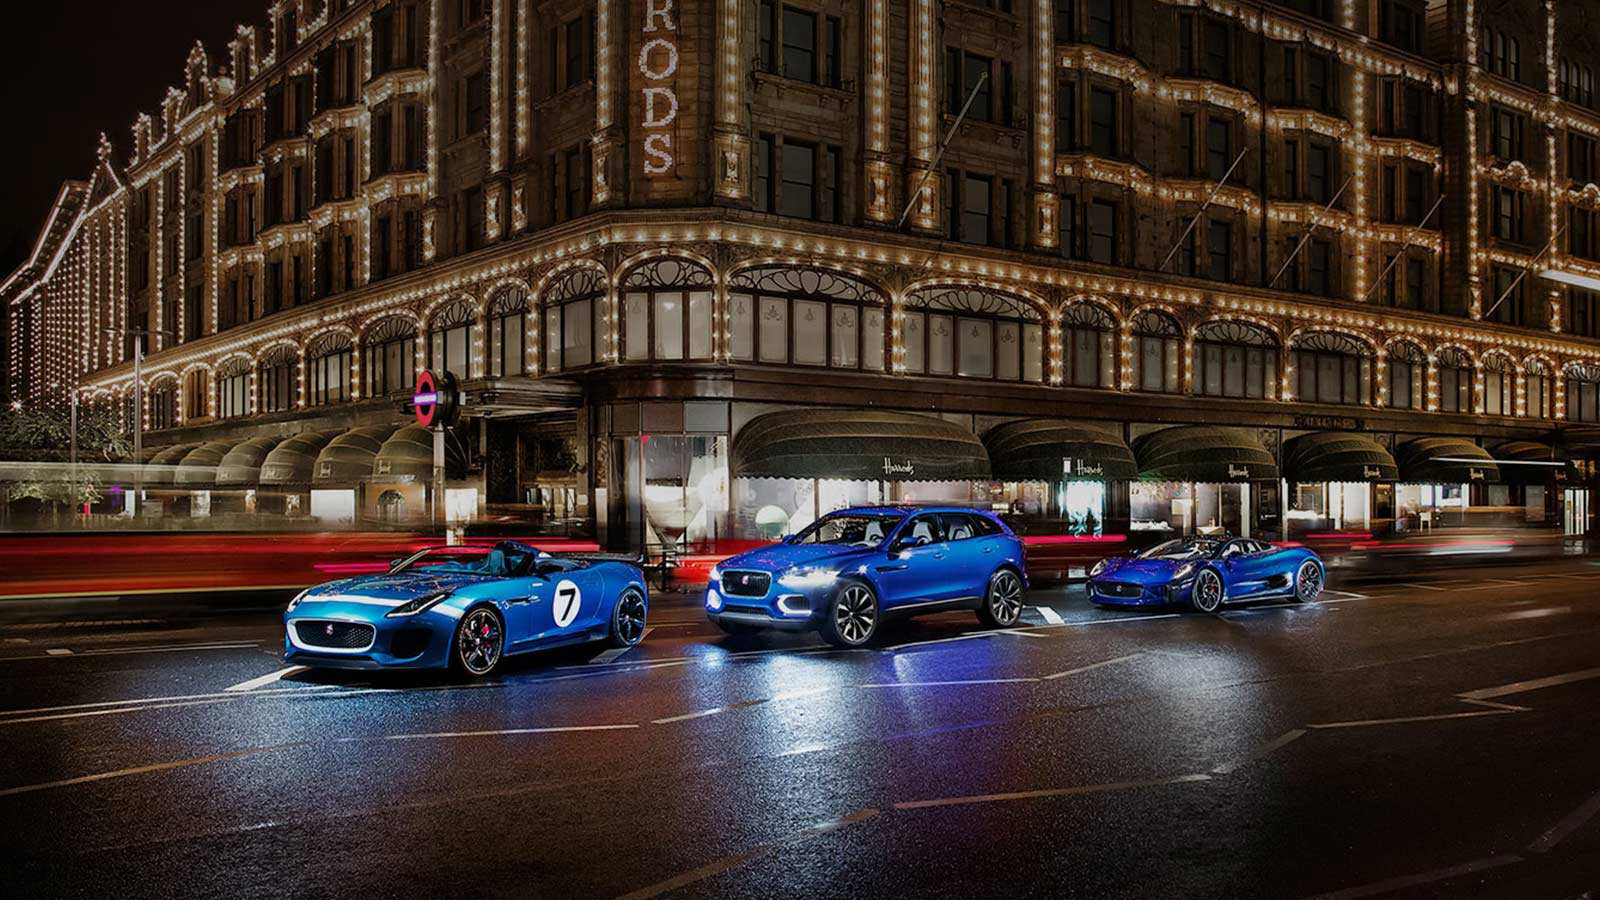 A lineup of a Jaguar Project 7, F-PACE and C-X75 Concept Car, all in blue outside Harrods in London at night.